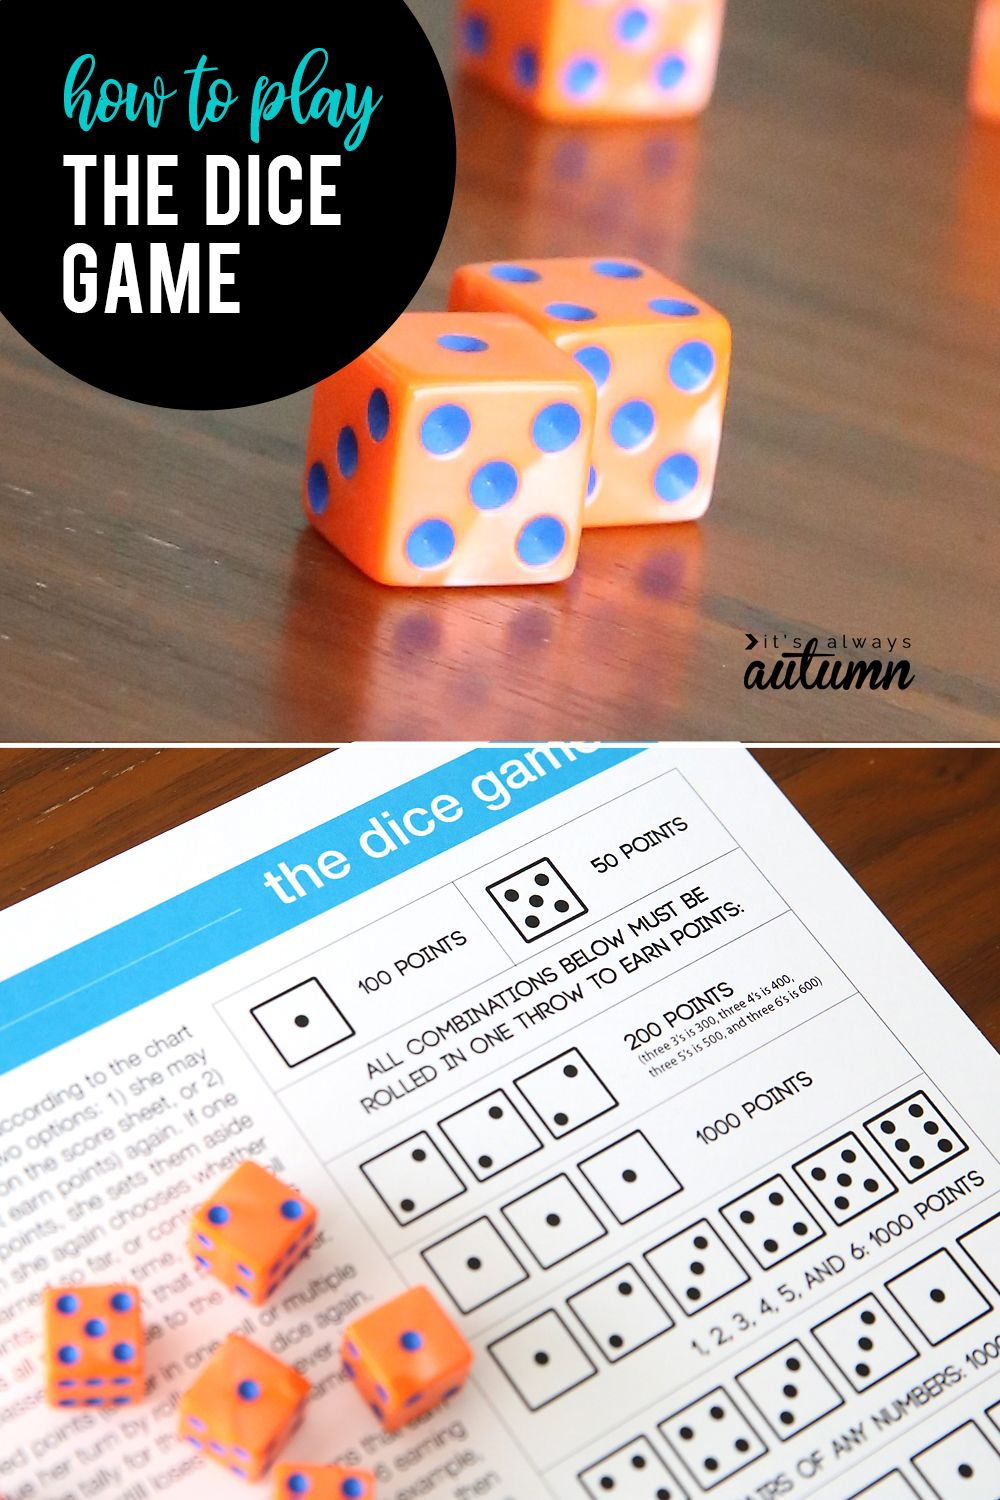 The Dice Game Fun Easy Game For Kids And Adults It S Always Autumn Easy Games For Kids Simple Game Dice Games